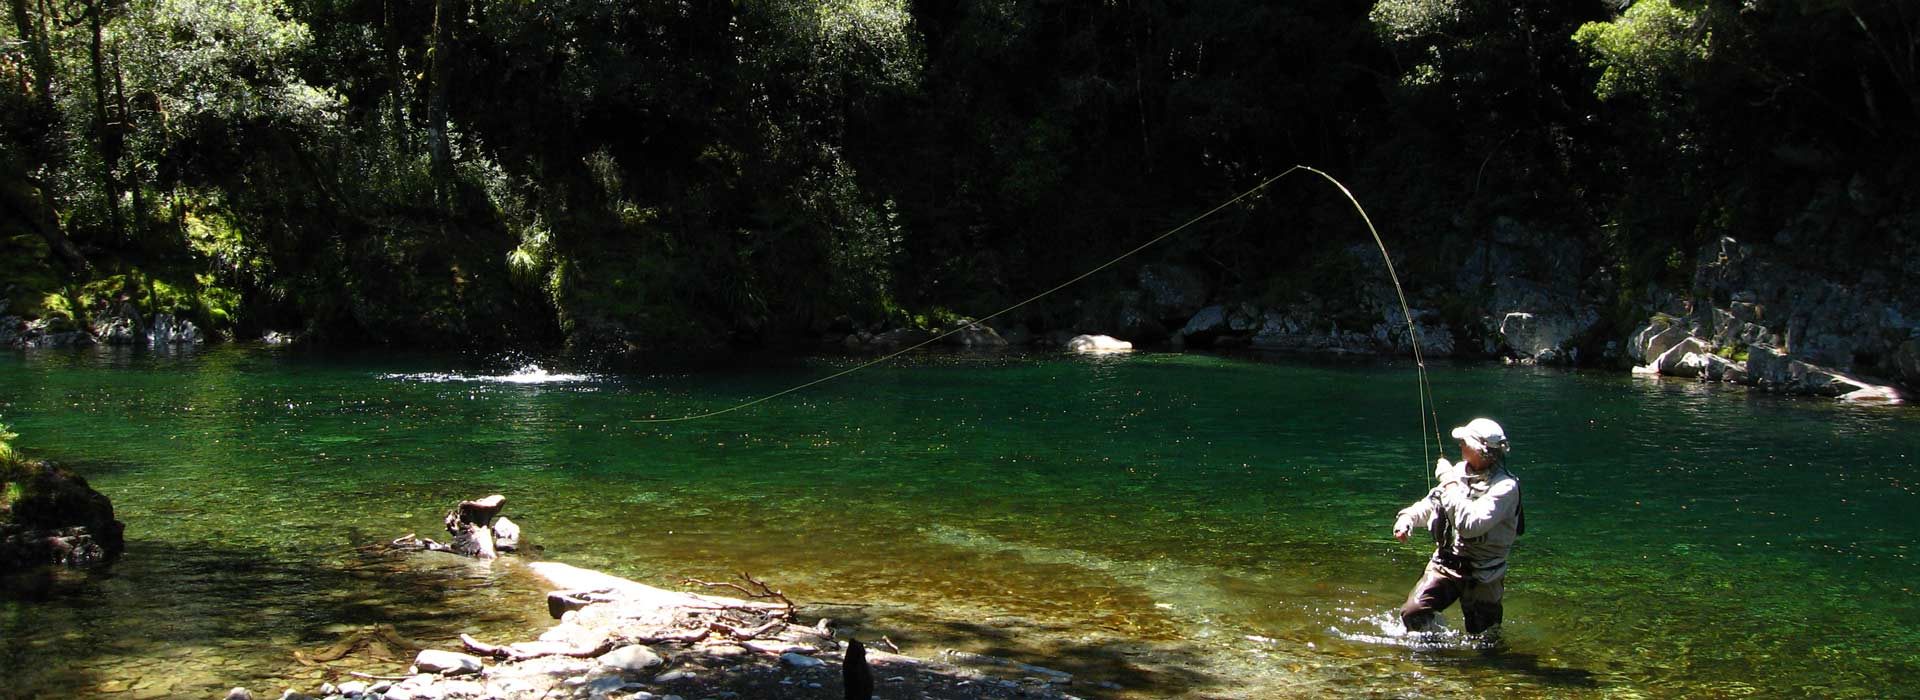 Trout fishing in the top of New Zealand's South Island